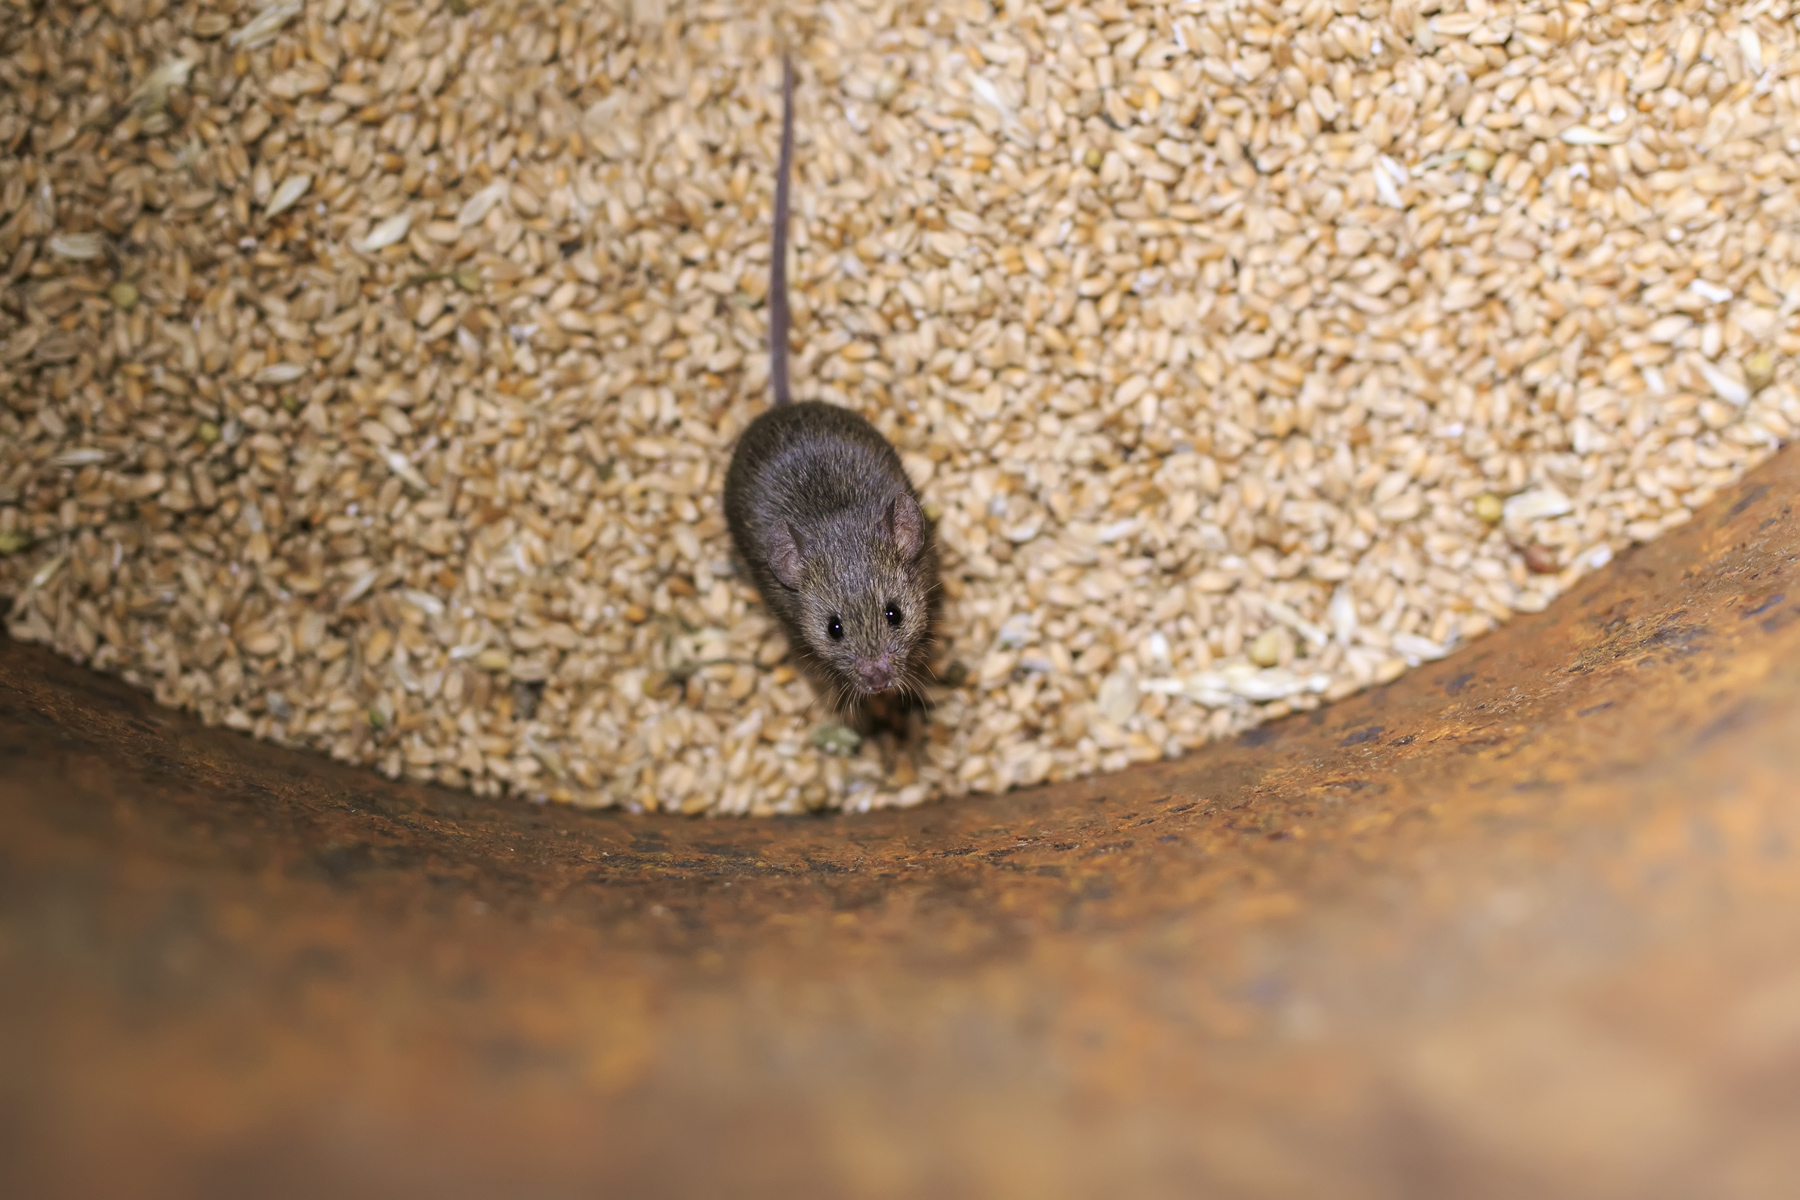 McMurray Hatchery | Snakes Are Attracted to Rodents